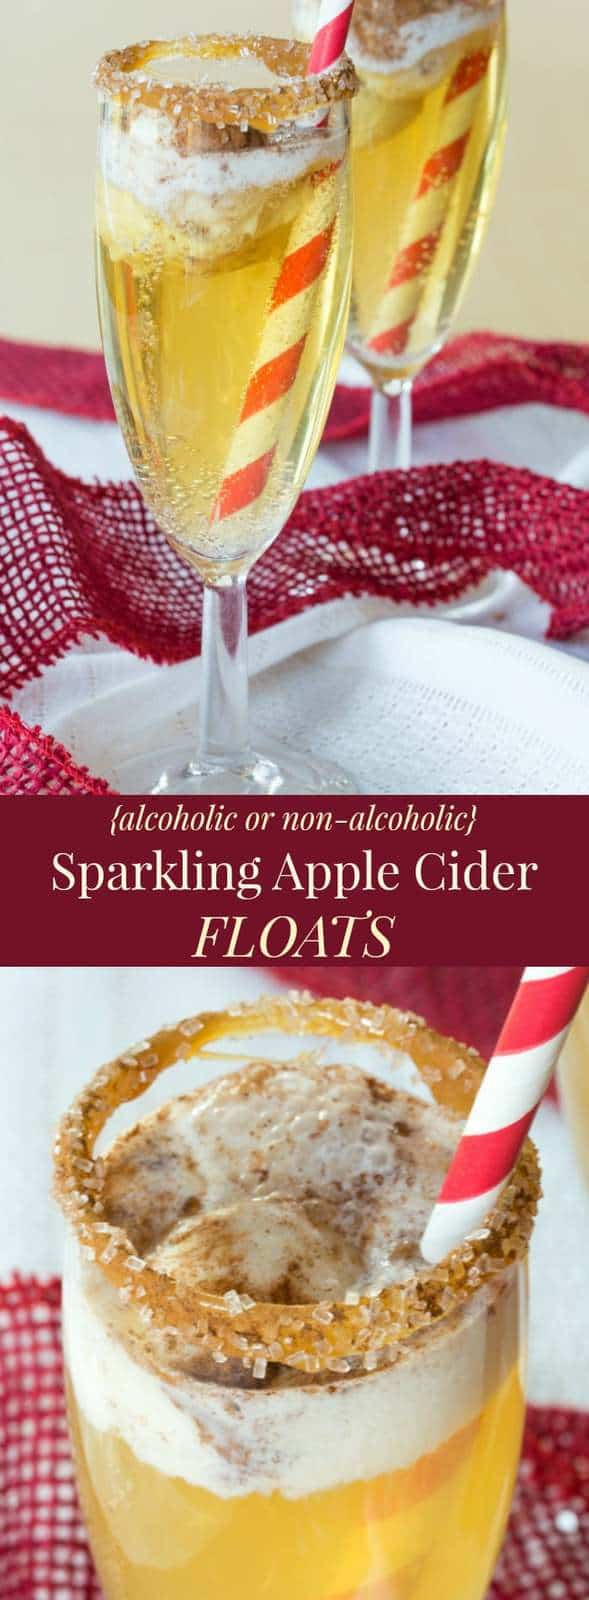 Sparkling Apple Cider Floats Recipes (alcoholic and non ...